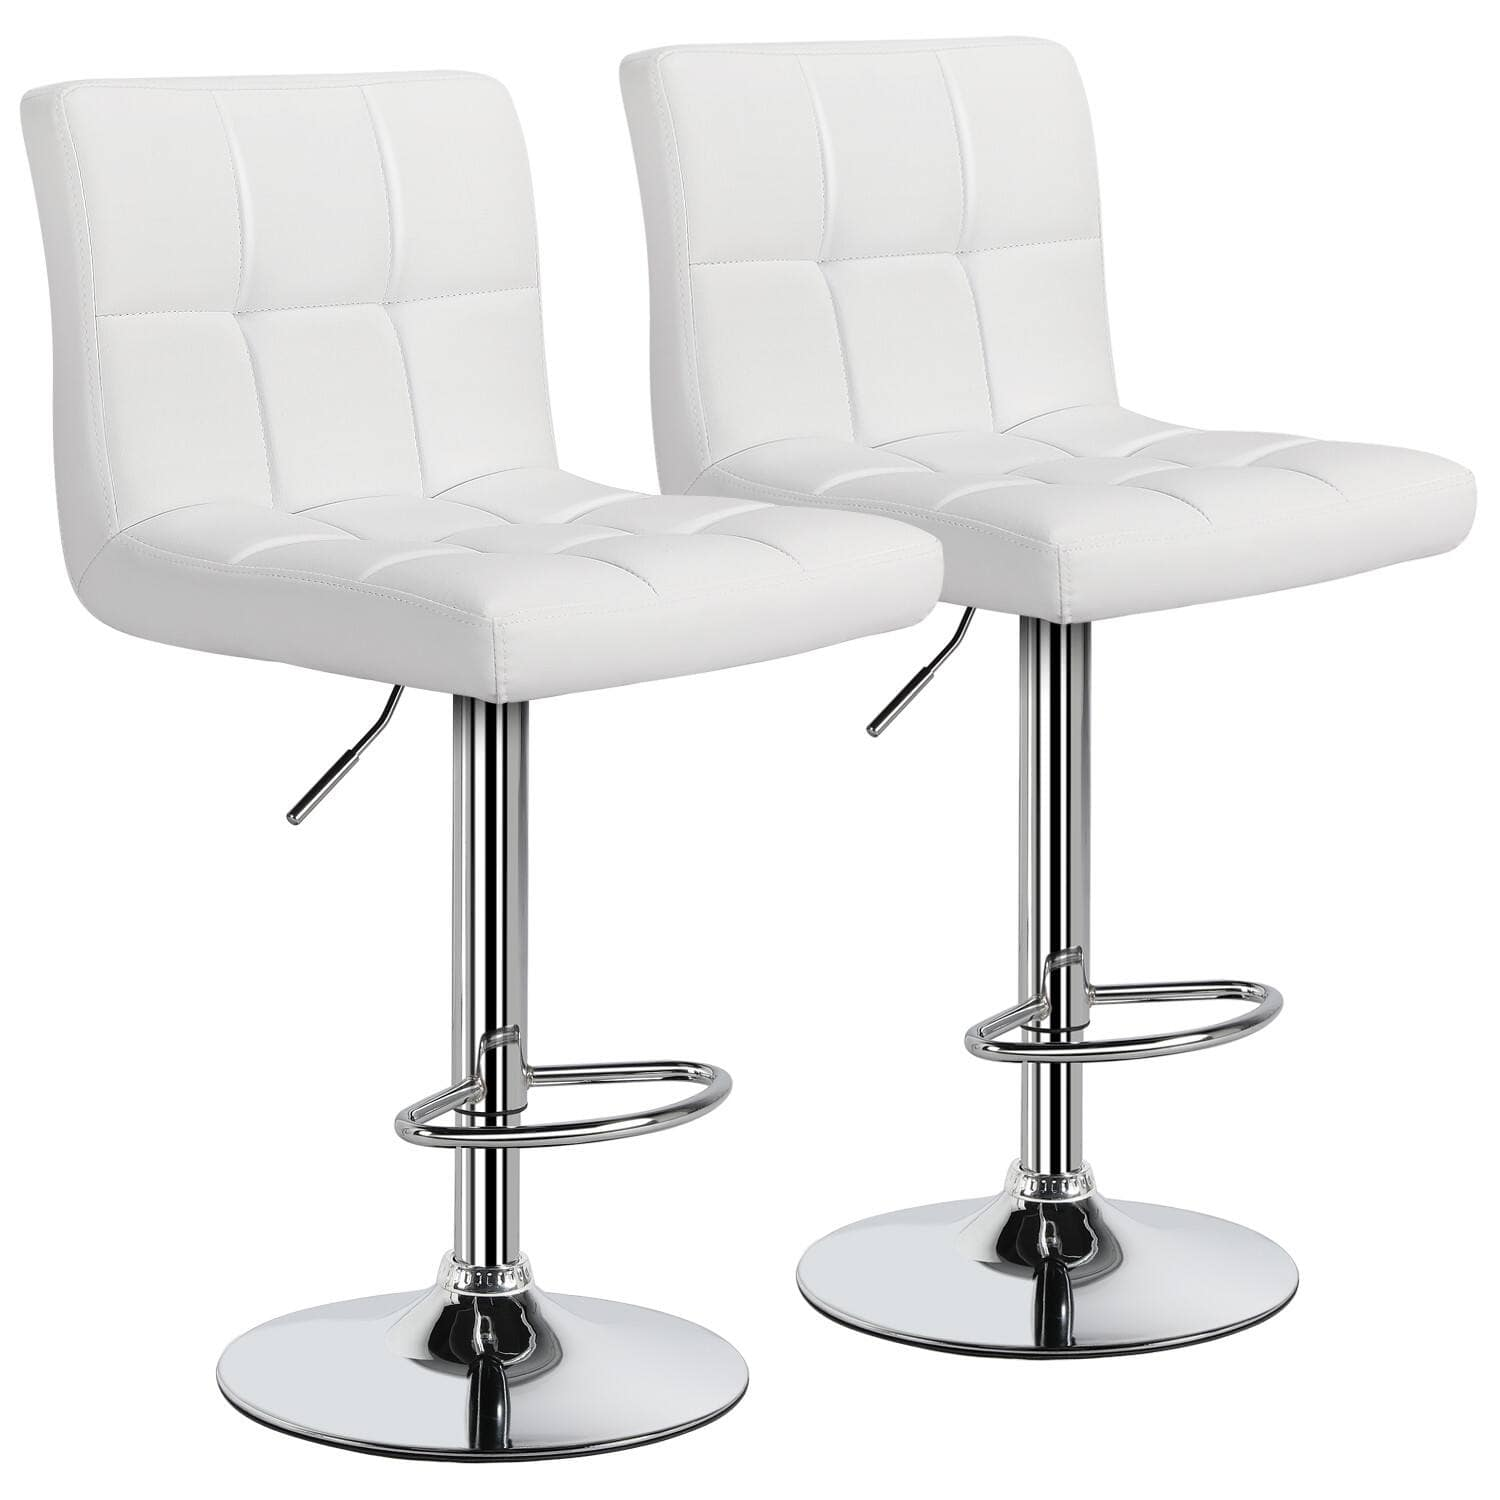 Yaheetech X-Large Swivel Bar Stools 2-Pcs $68 + Free Shipping